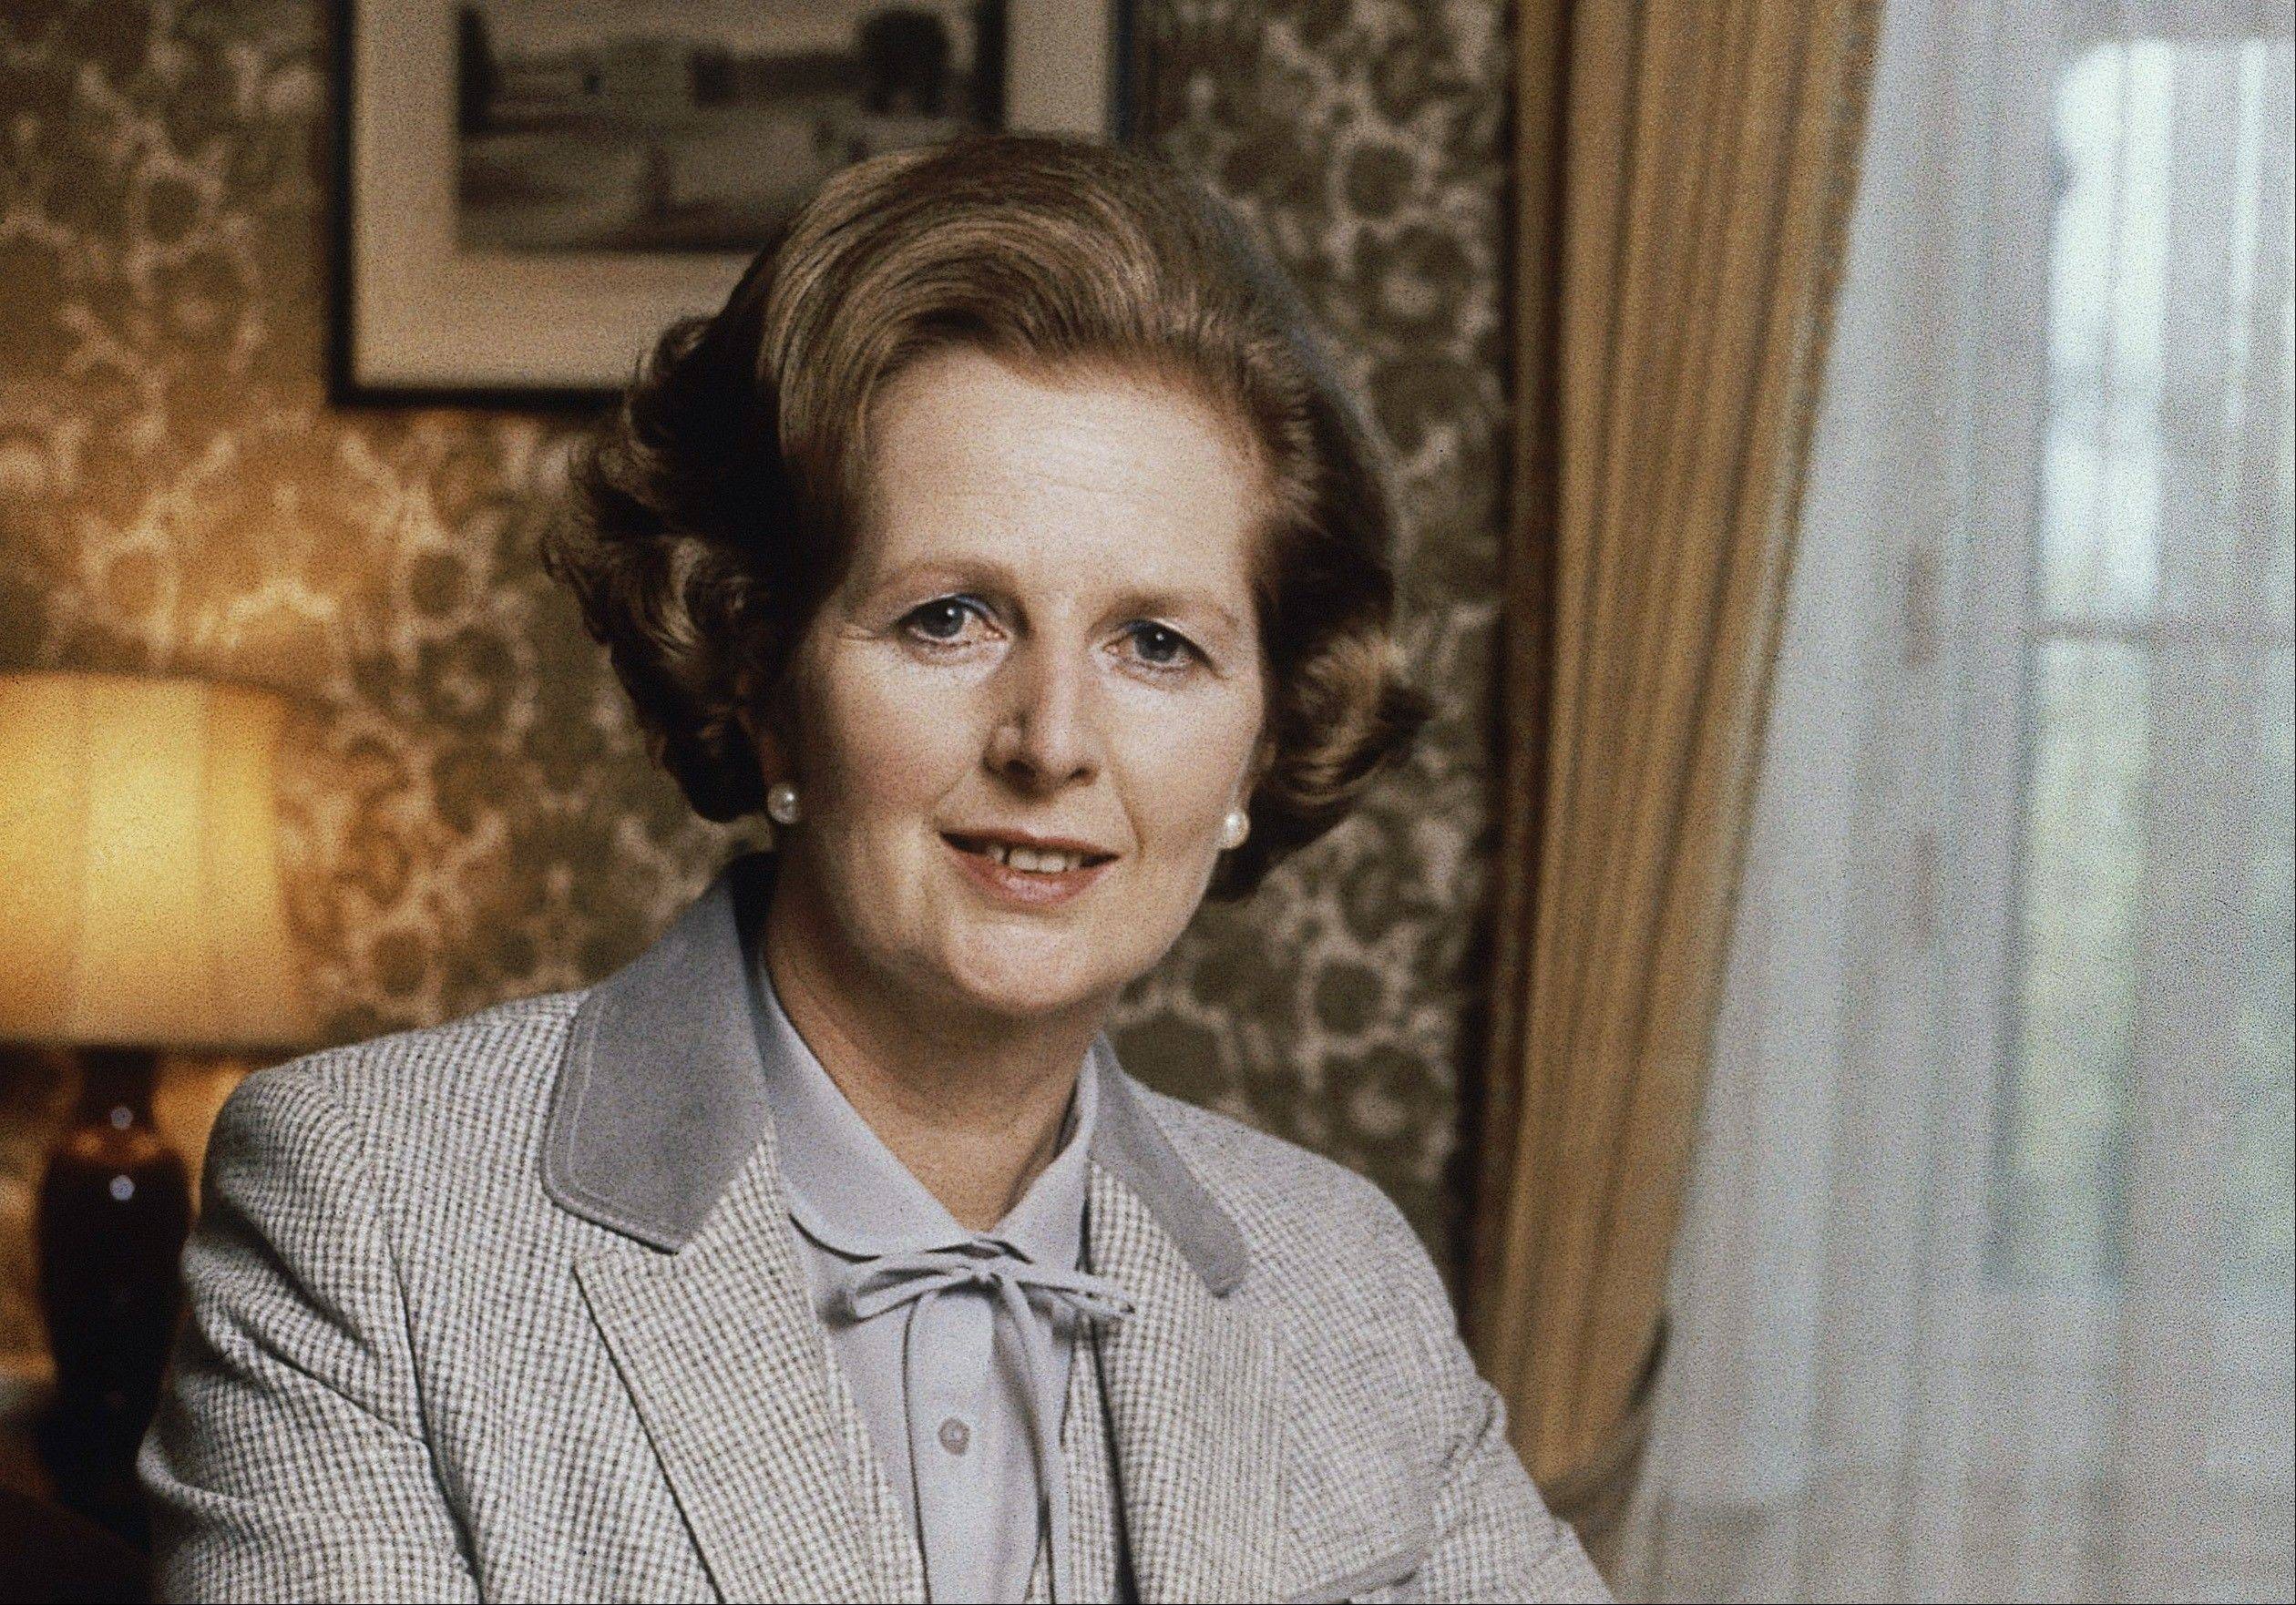 This 1980 file photo shows British Prime Minister Margaret Thatcher in London. Thatcher died of a stroke Monday morning, April 8, 2013. She was 87.